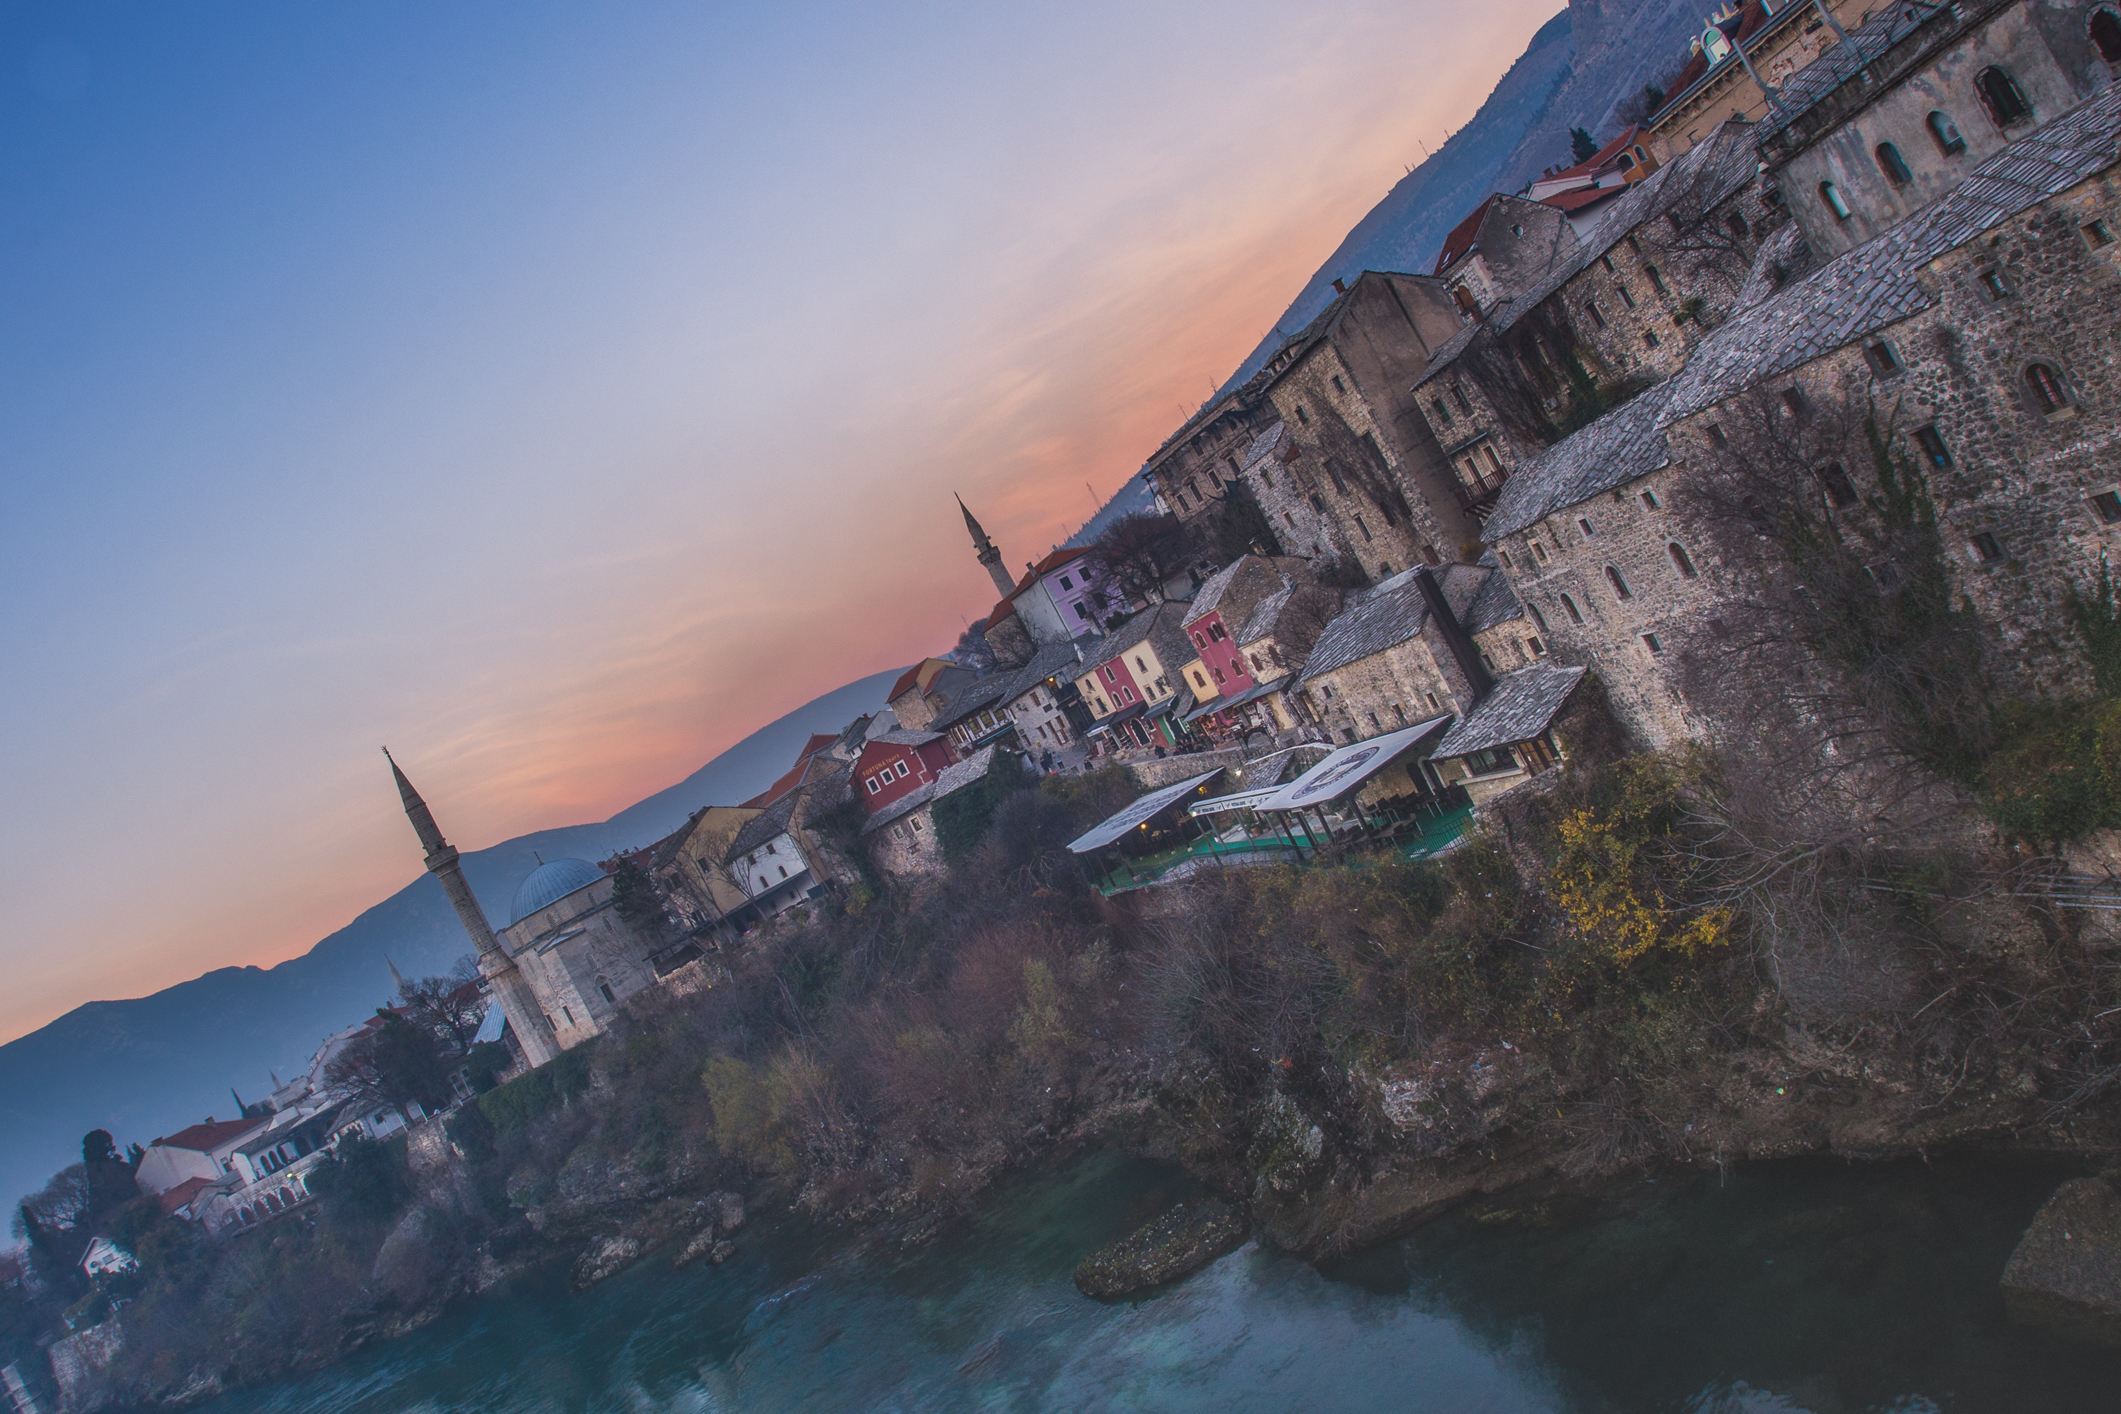 The town of Mostar, Bosnia as seen at dusk from the iconic Stari Most bridge. This place was  under siege  during the Croat-Bosniak war in the early 1990s.